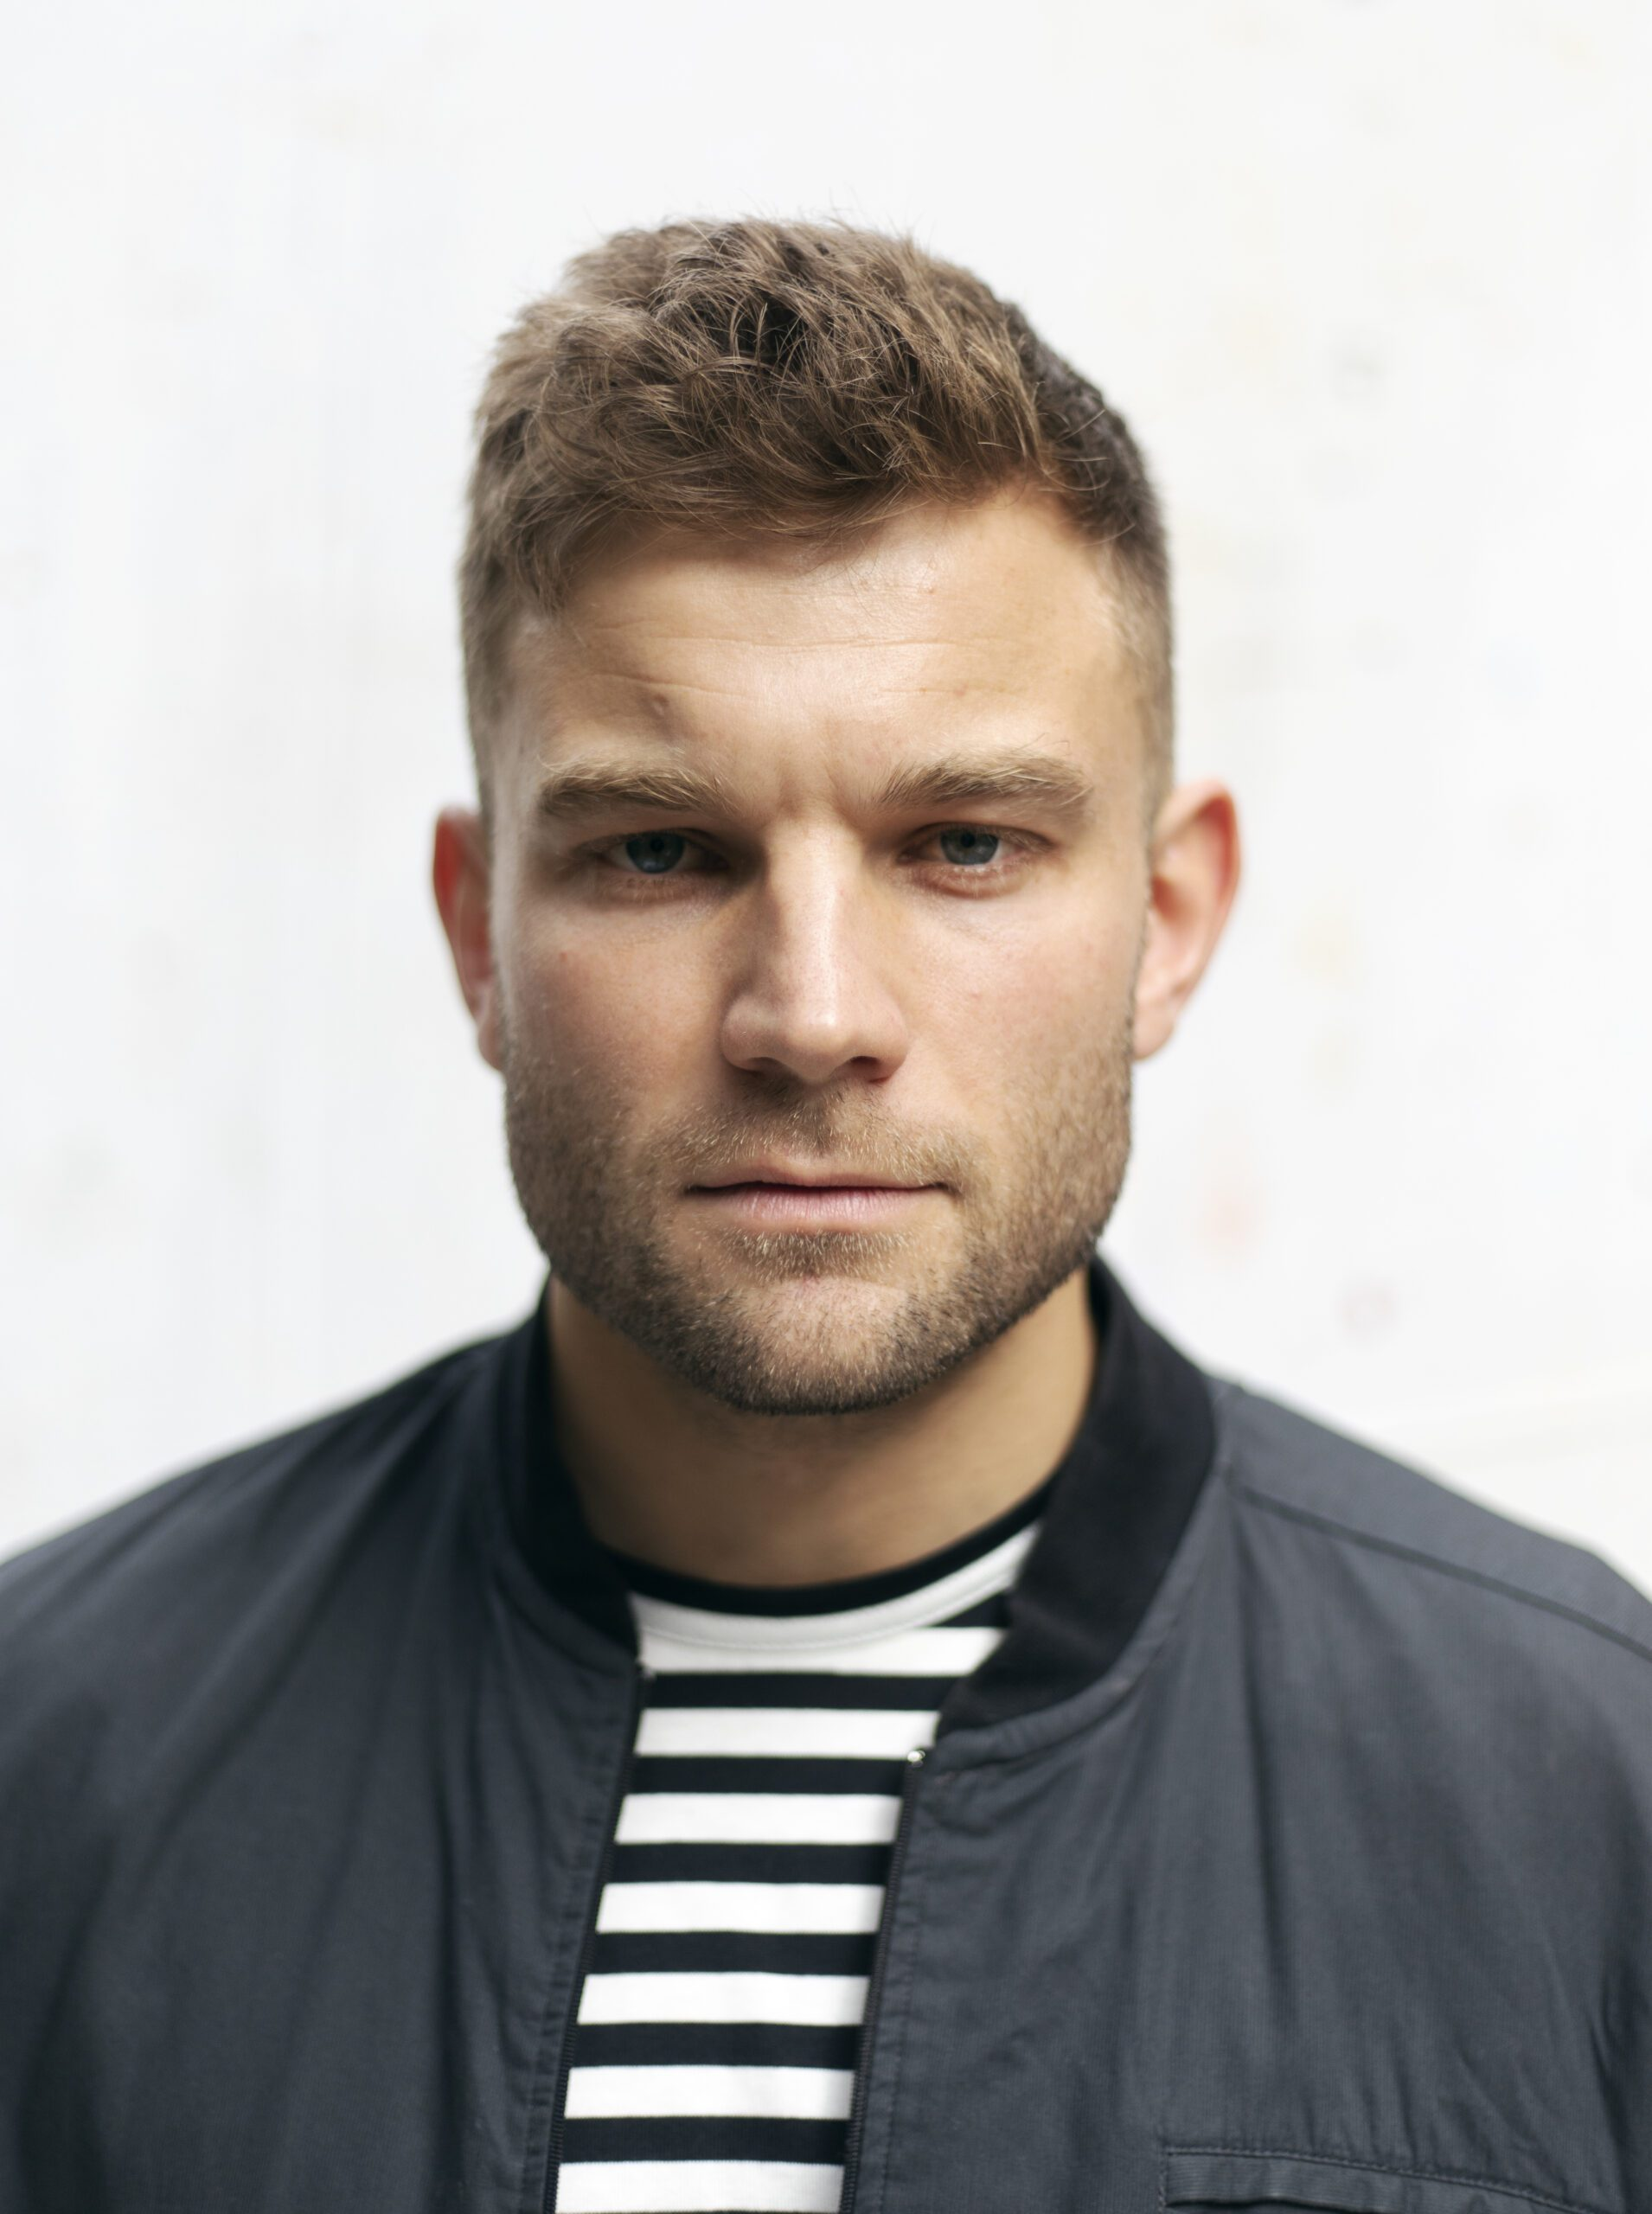 Head shot of Alex Cooper wearing a stripped shirt and navy jacket